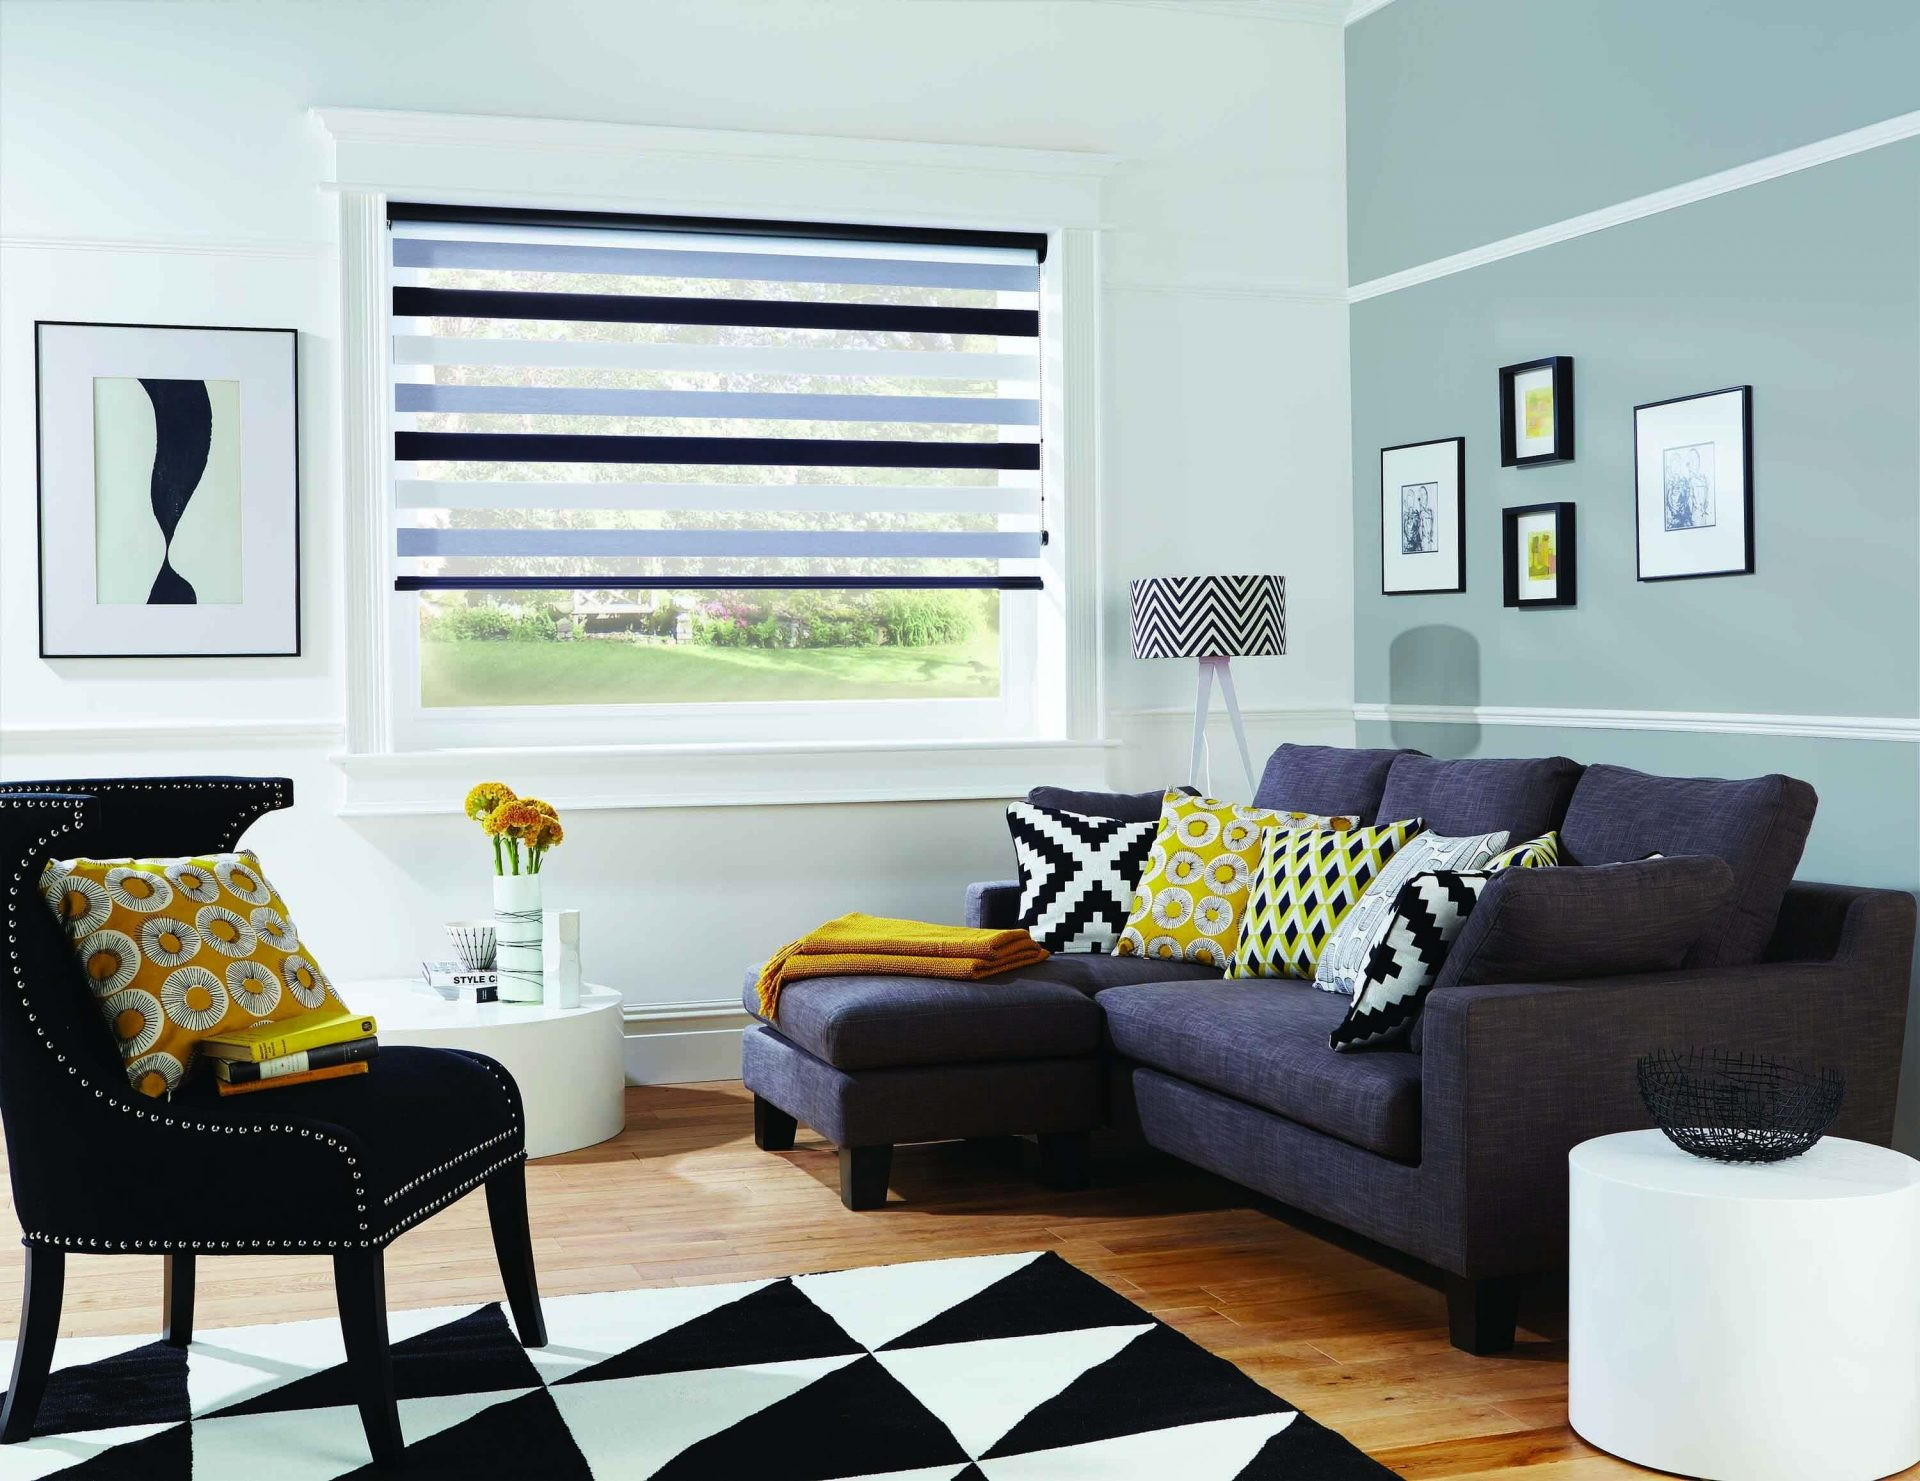 Sorrento Luna | Vision Blinds